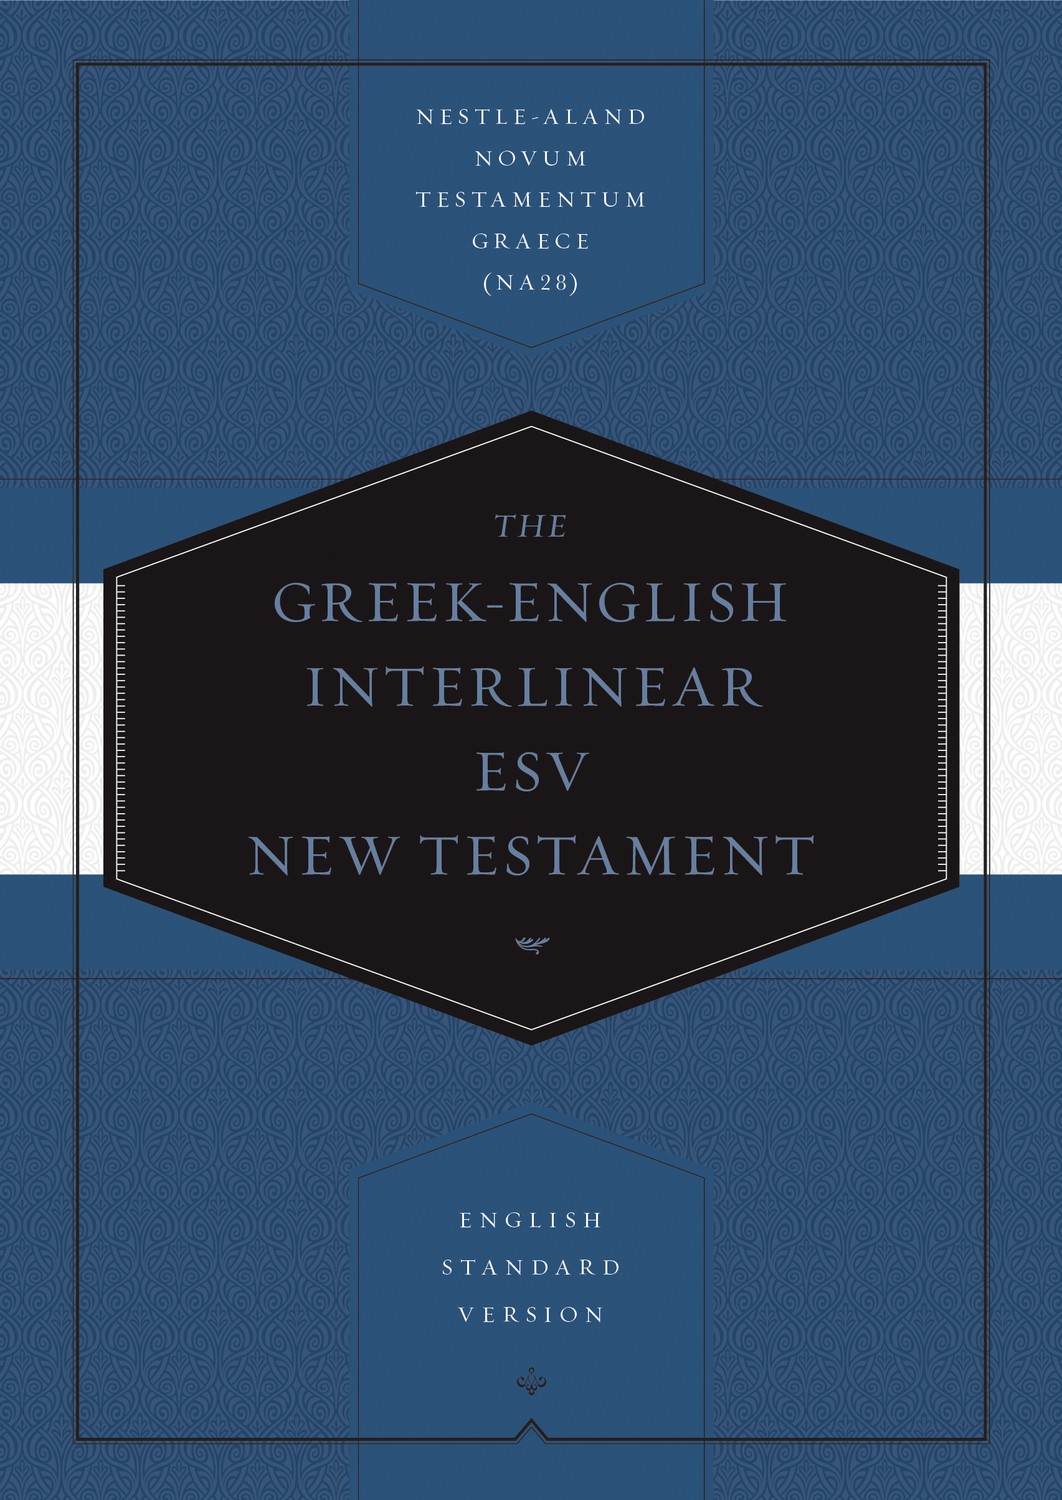 Greek-English Interlinear ESV New Testament